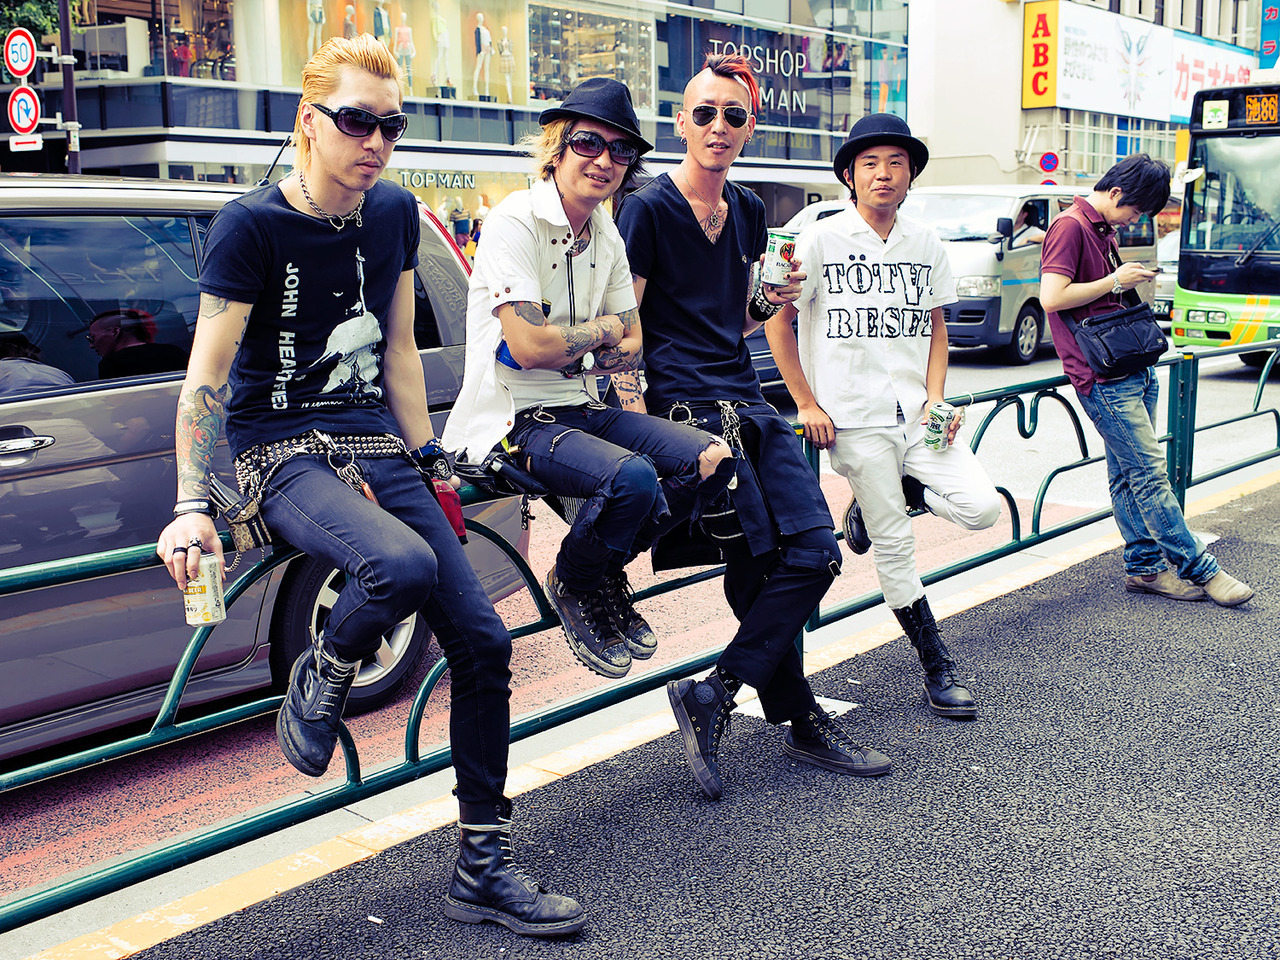 Tattooed Japanese punks drinking beer on the street in Harajuku. :-)